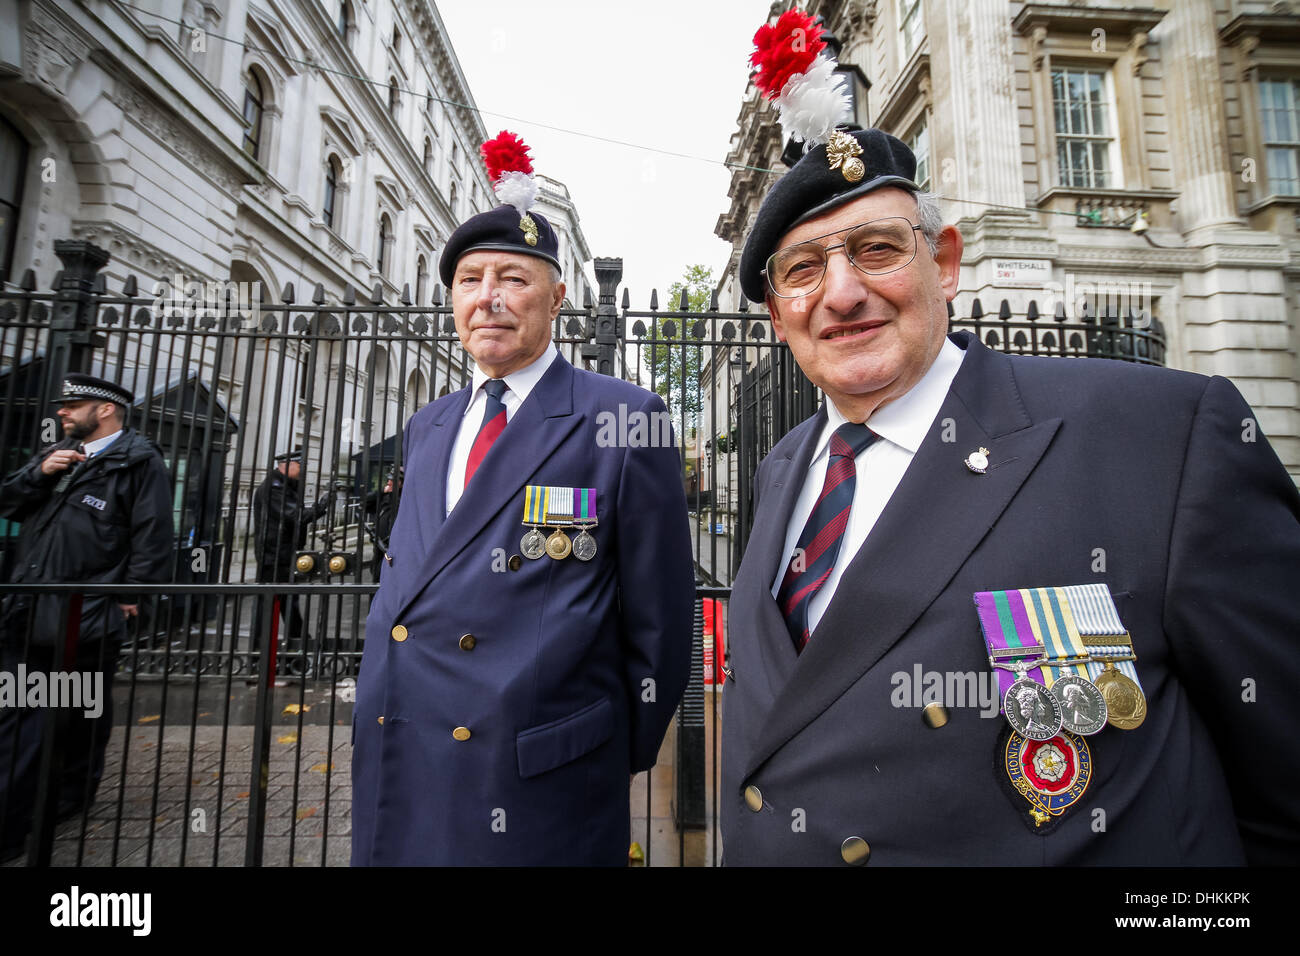 London, UK. 12th November 2013. Royal Fusiliers Protest outside Downing Street in London Credit:  Guy Corbishley/Alamy - Stock Image